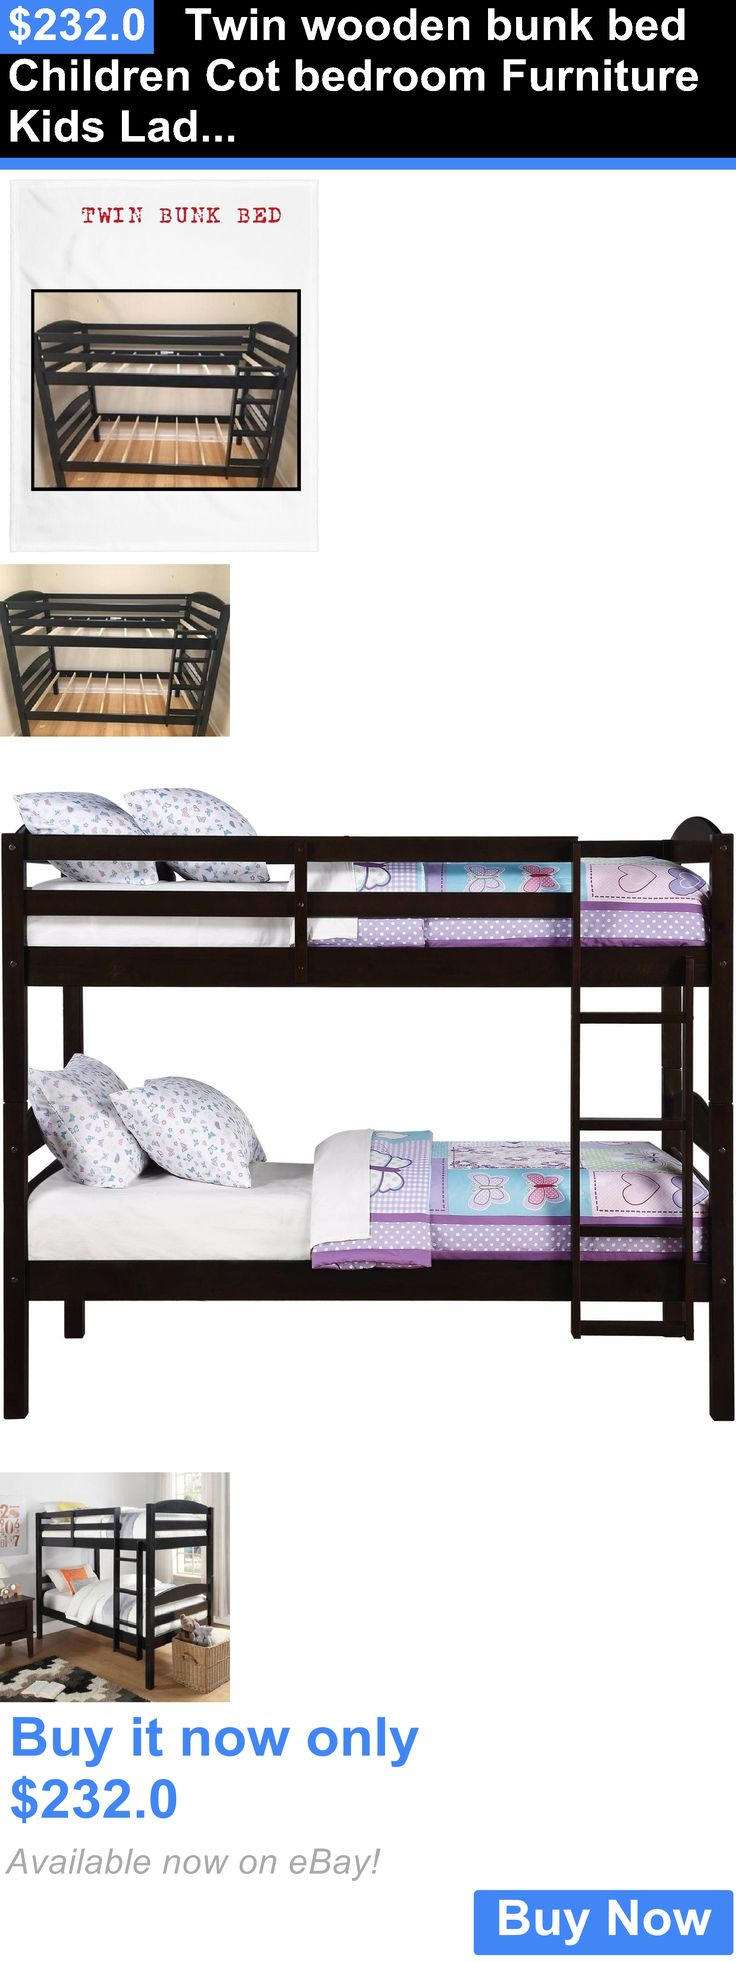 Kids Furniture: Twin Wooden Bunk Bed Children Cot Bedroom Furniture Kids Ladder Beds Furniture BUY IT NOW ONLY: $232.0